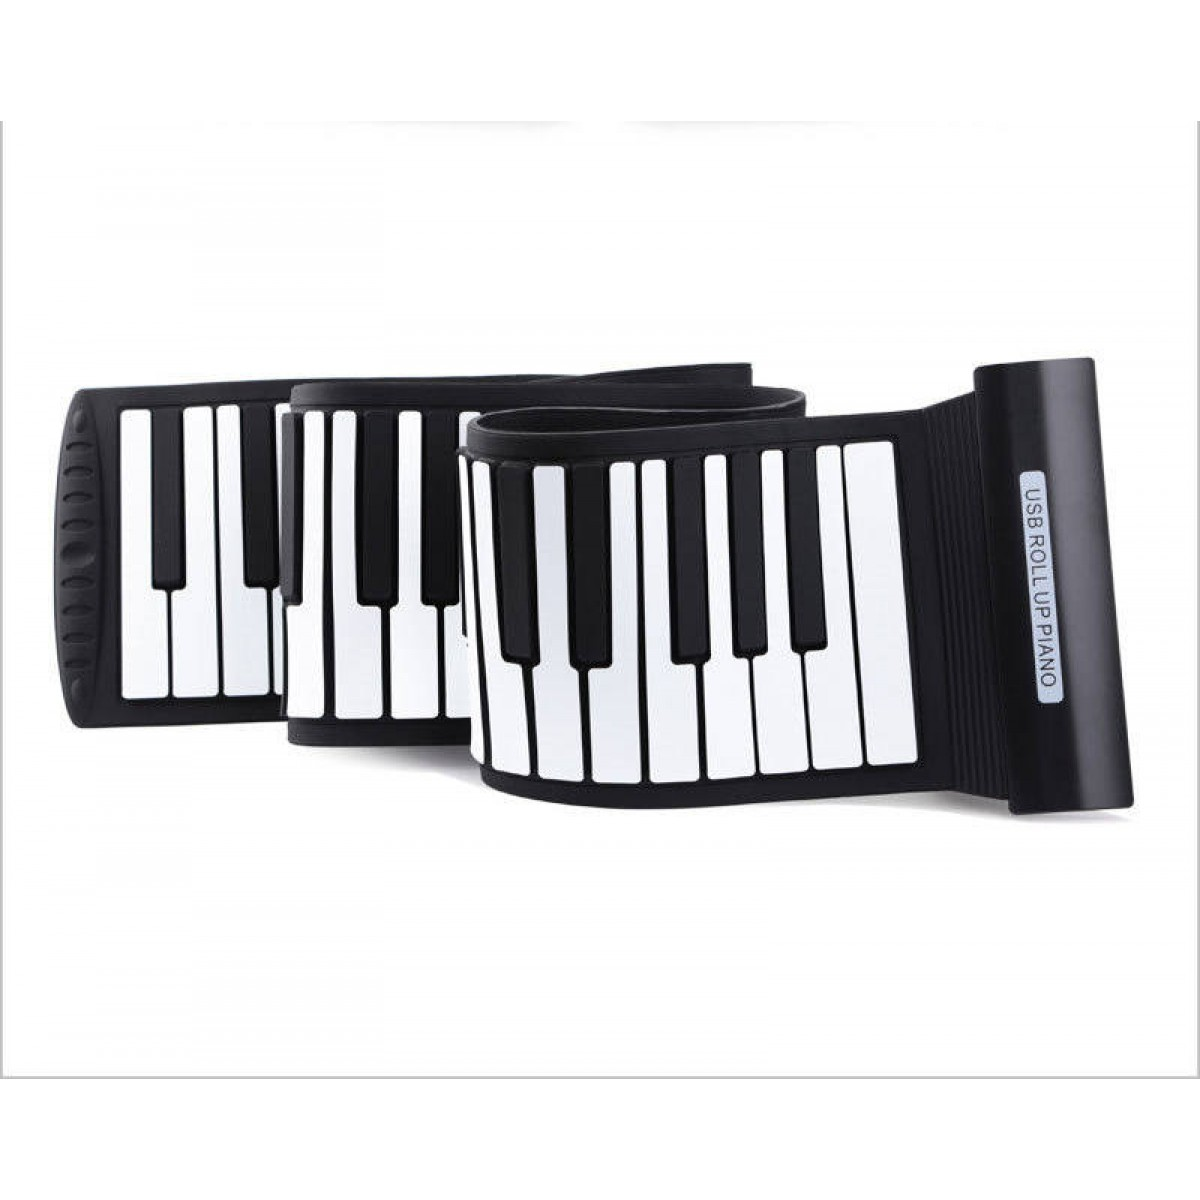 af0cfaa5951 88 Thickened Keys Electronic Roll Up Piano